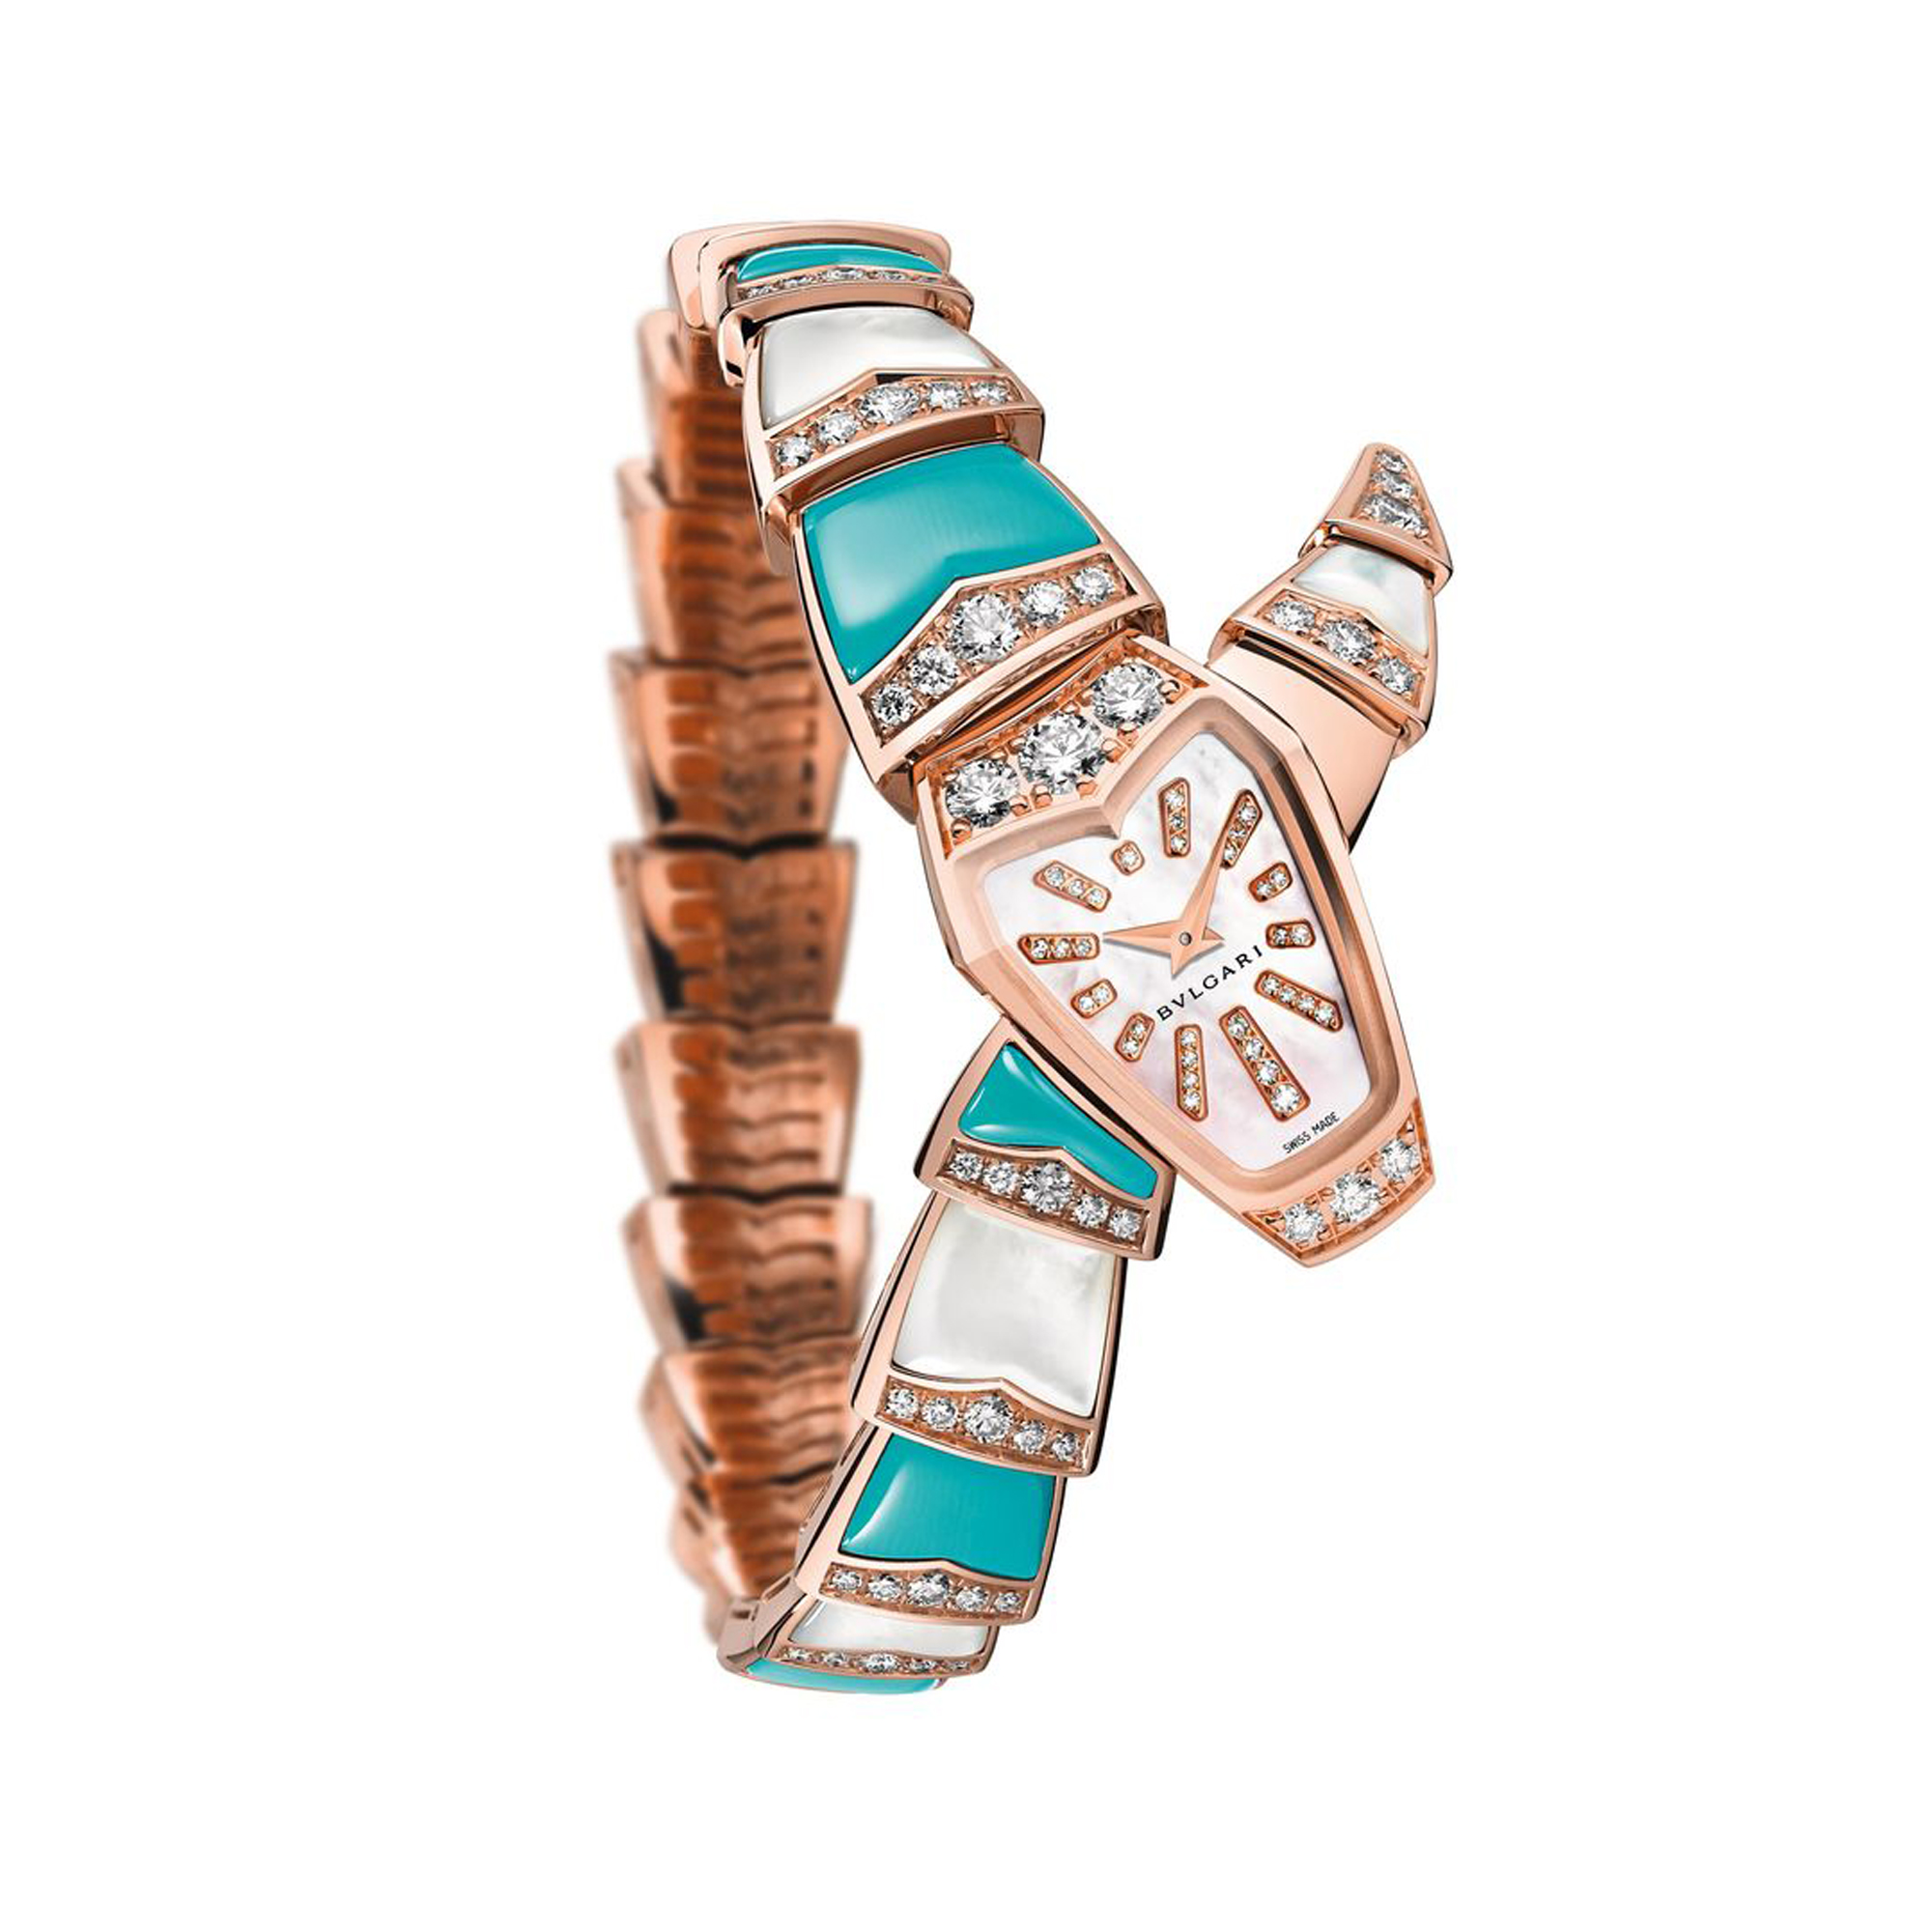 Bulgari Serpenti 18k Turquoise and Mother of Pearl Diamond Watch